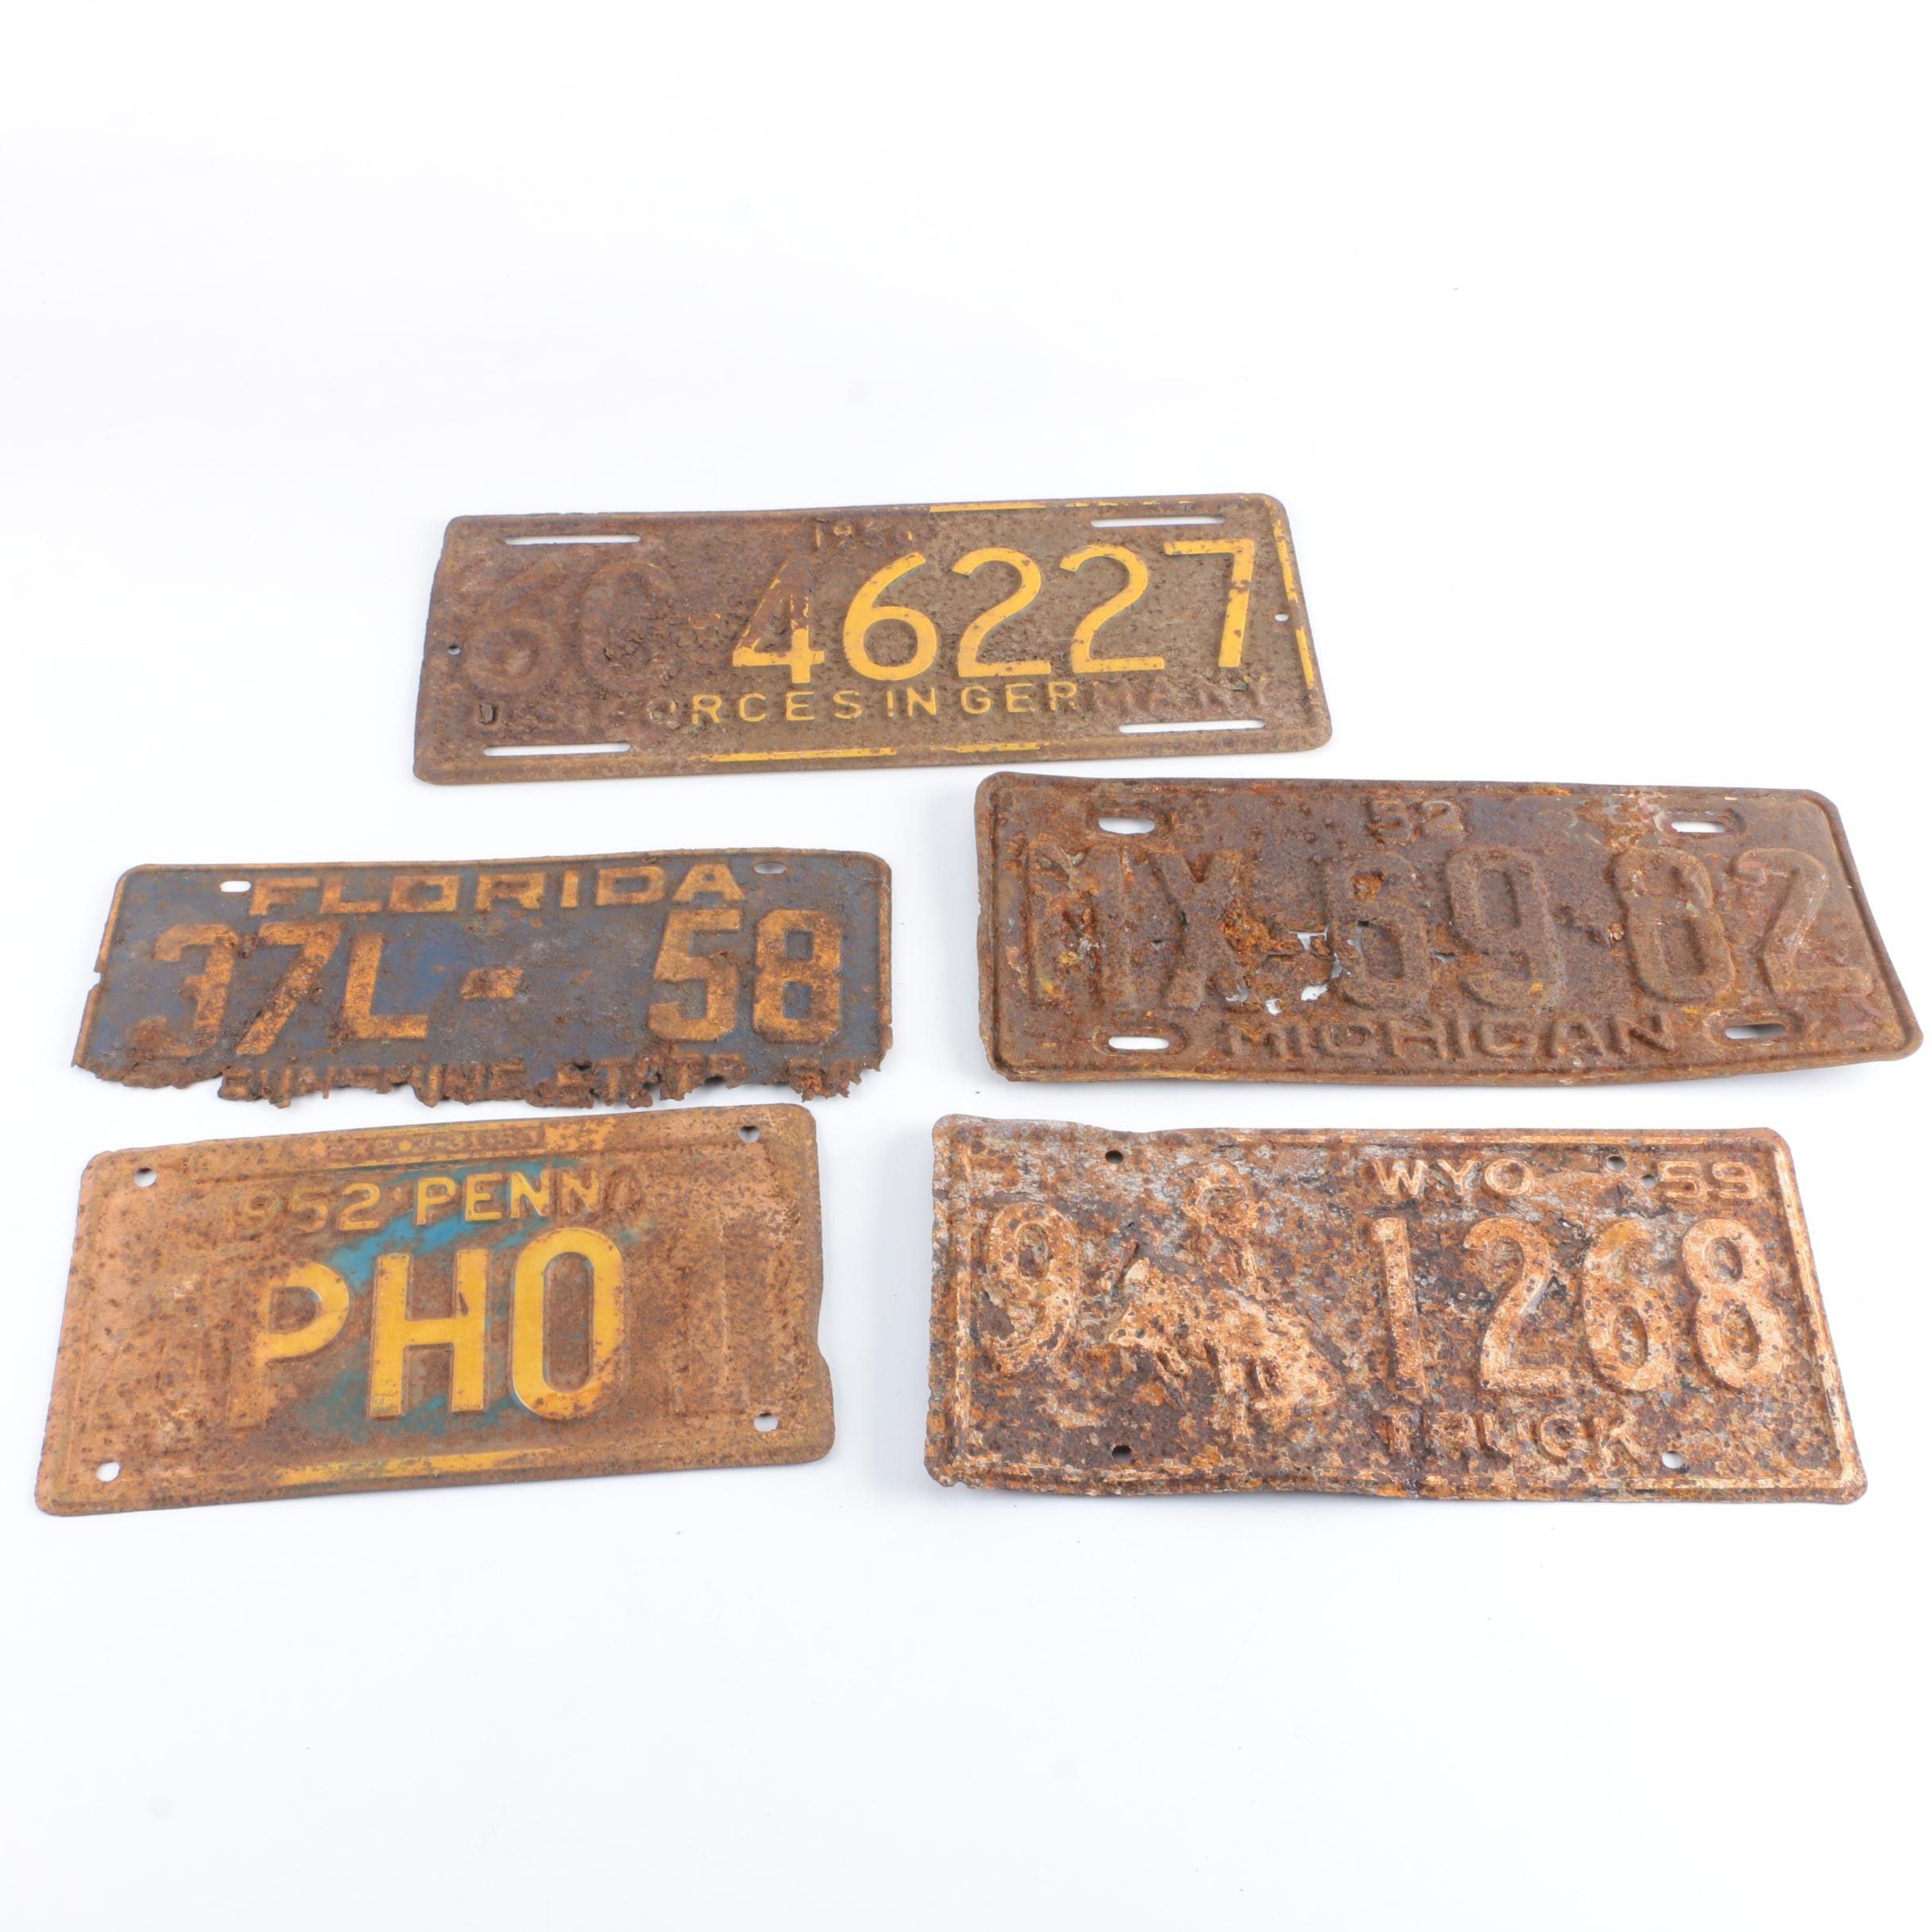 Vintage License Plates Including U.S. Forces in Germany